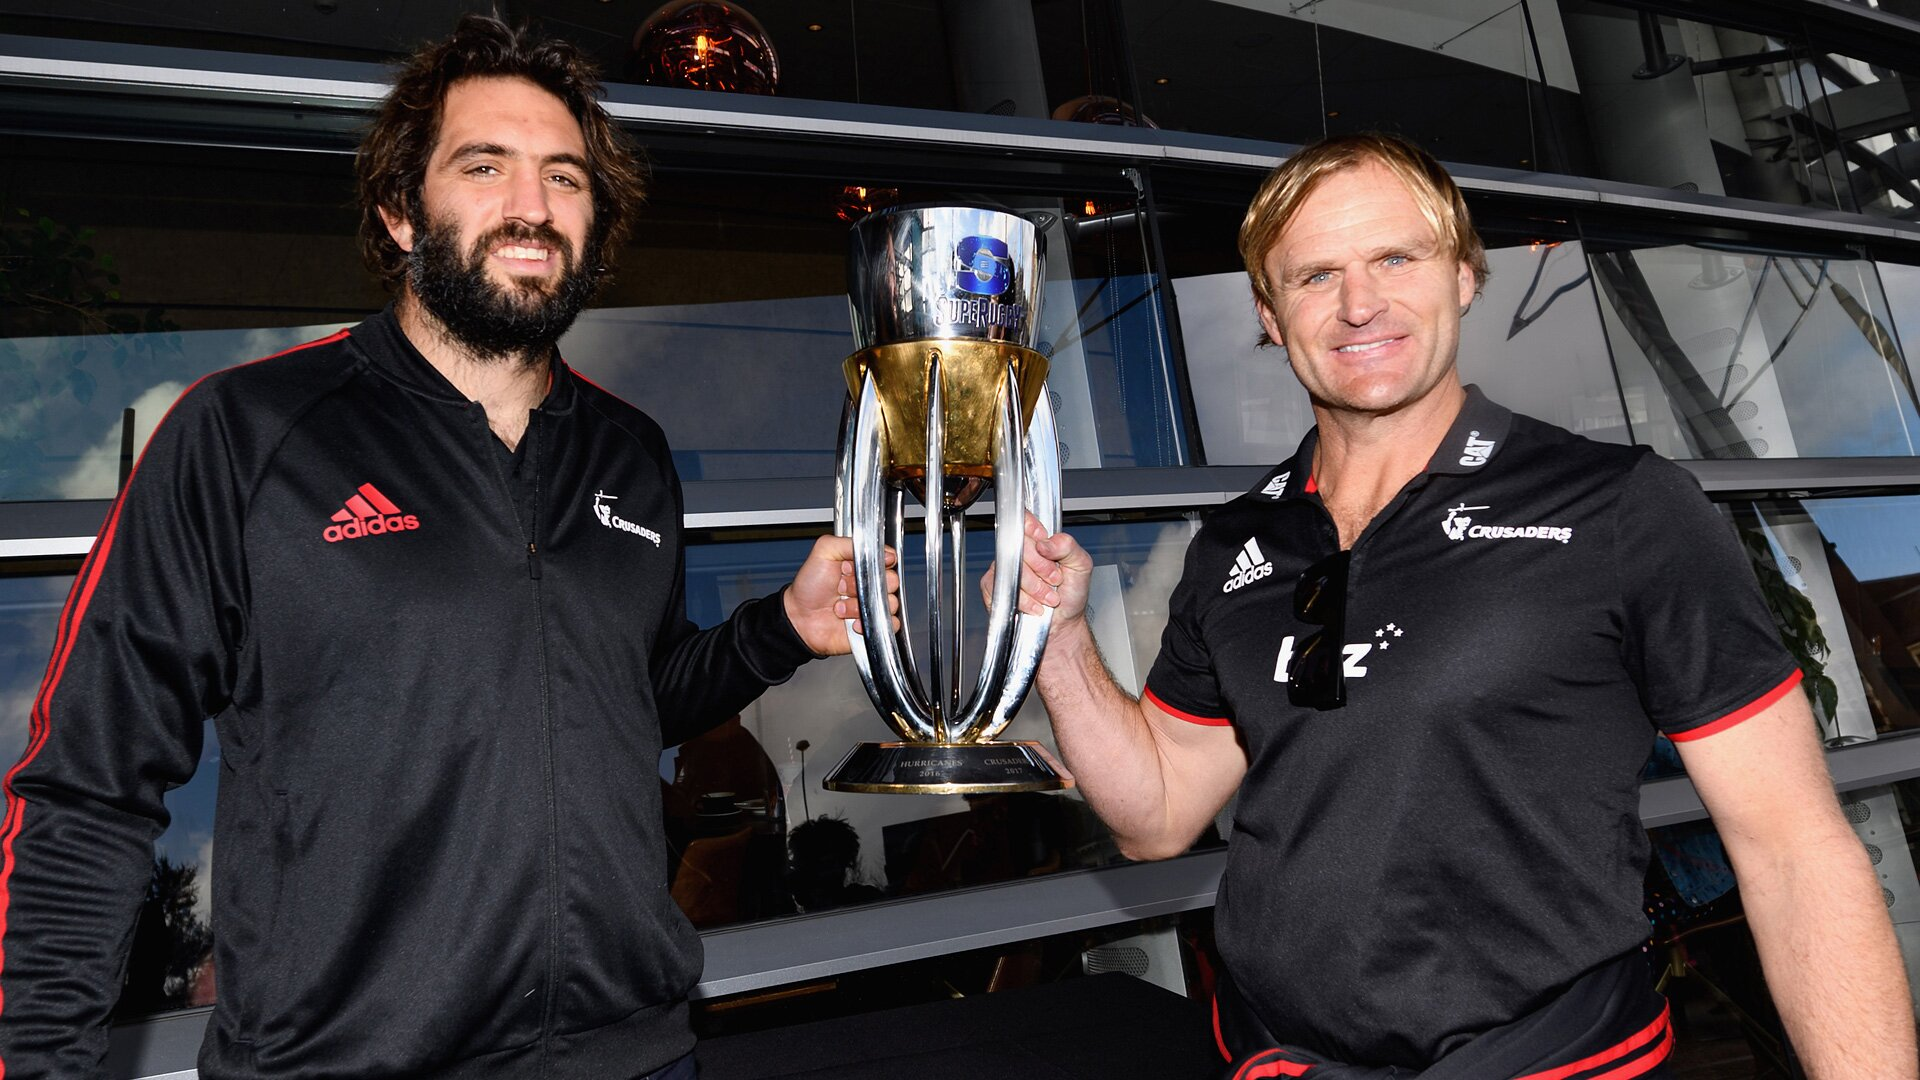 If Robertson can work his magic with Whitelock, Crusaders will be title favourites